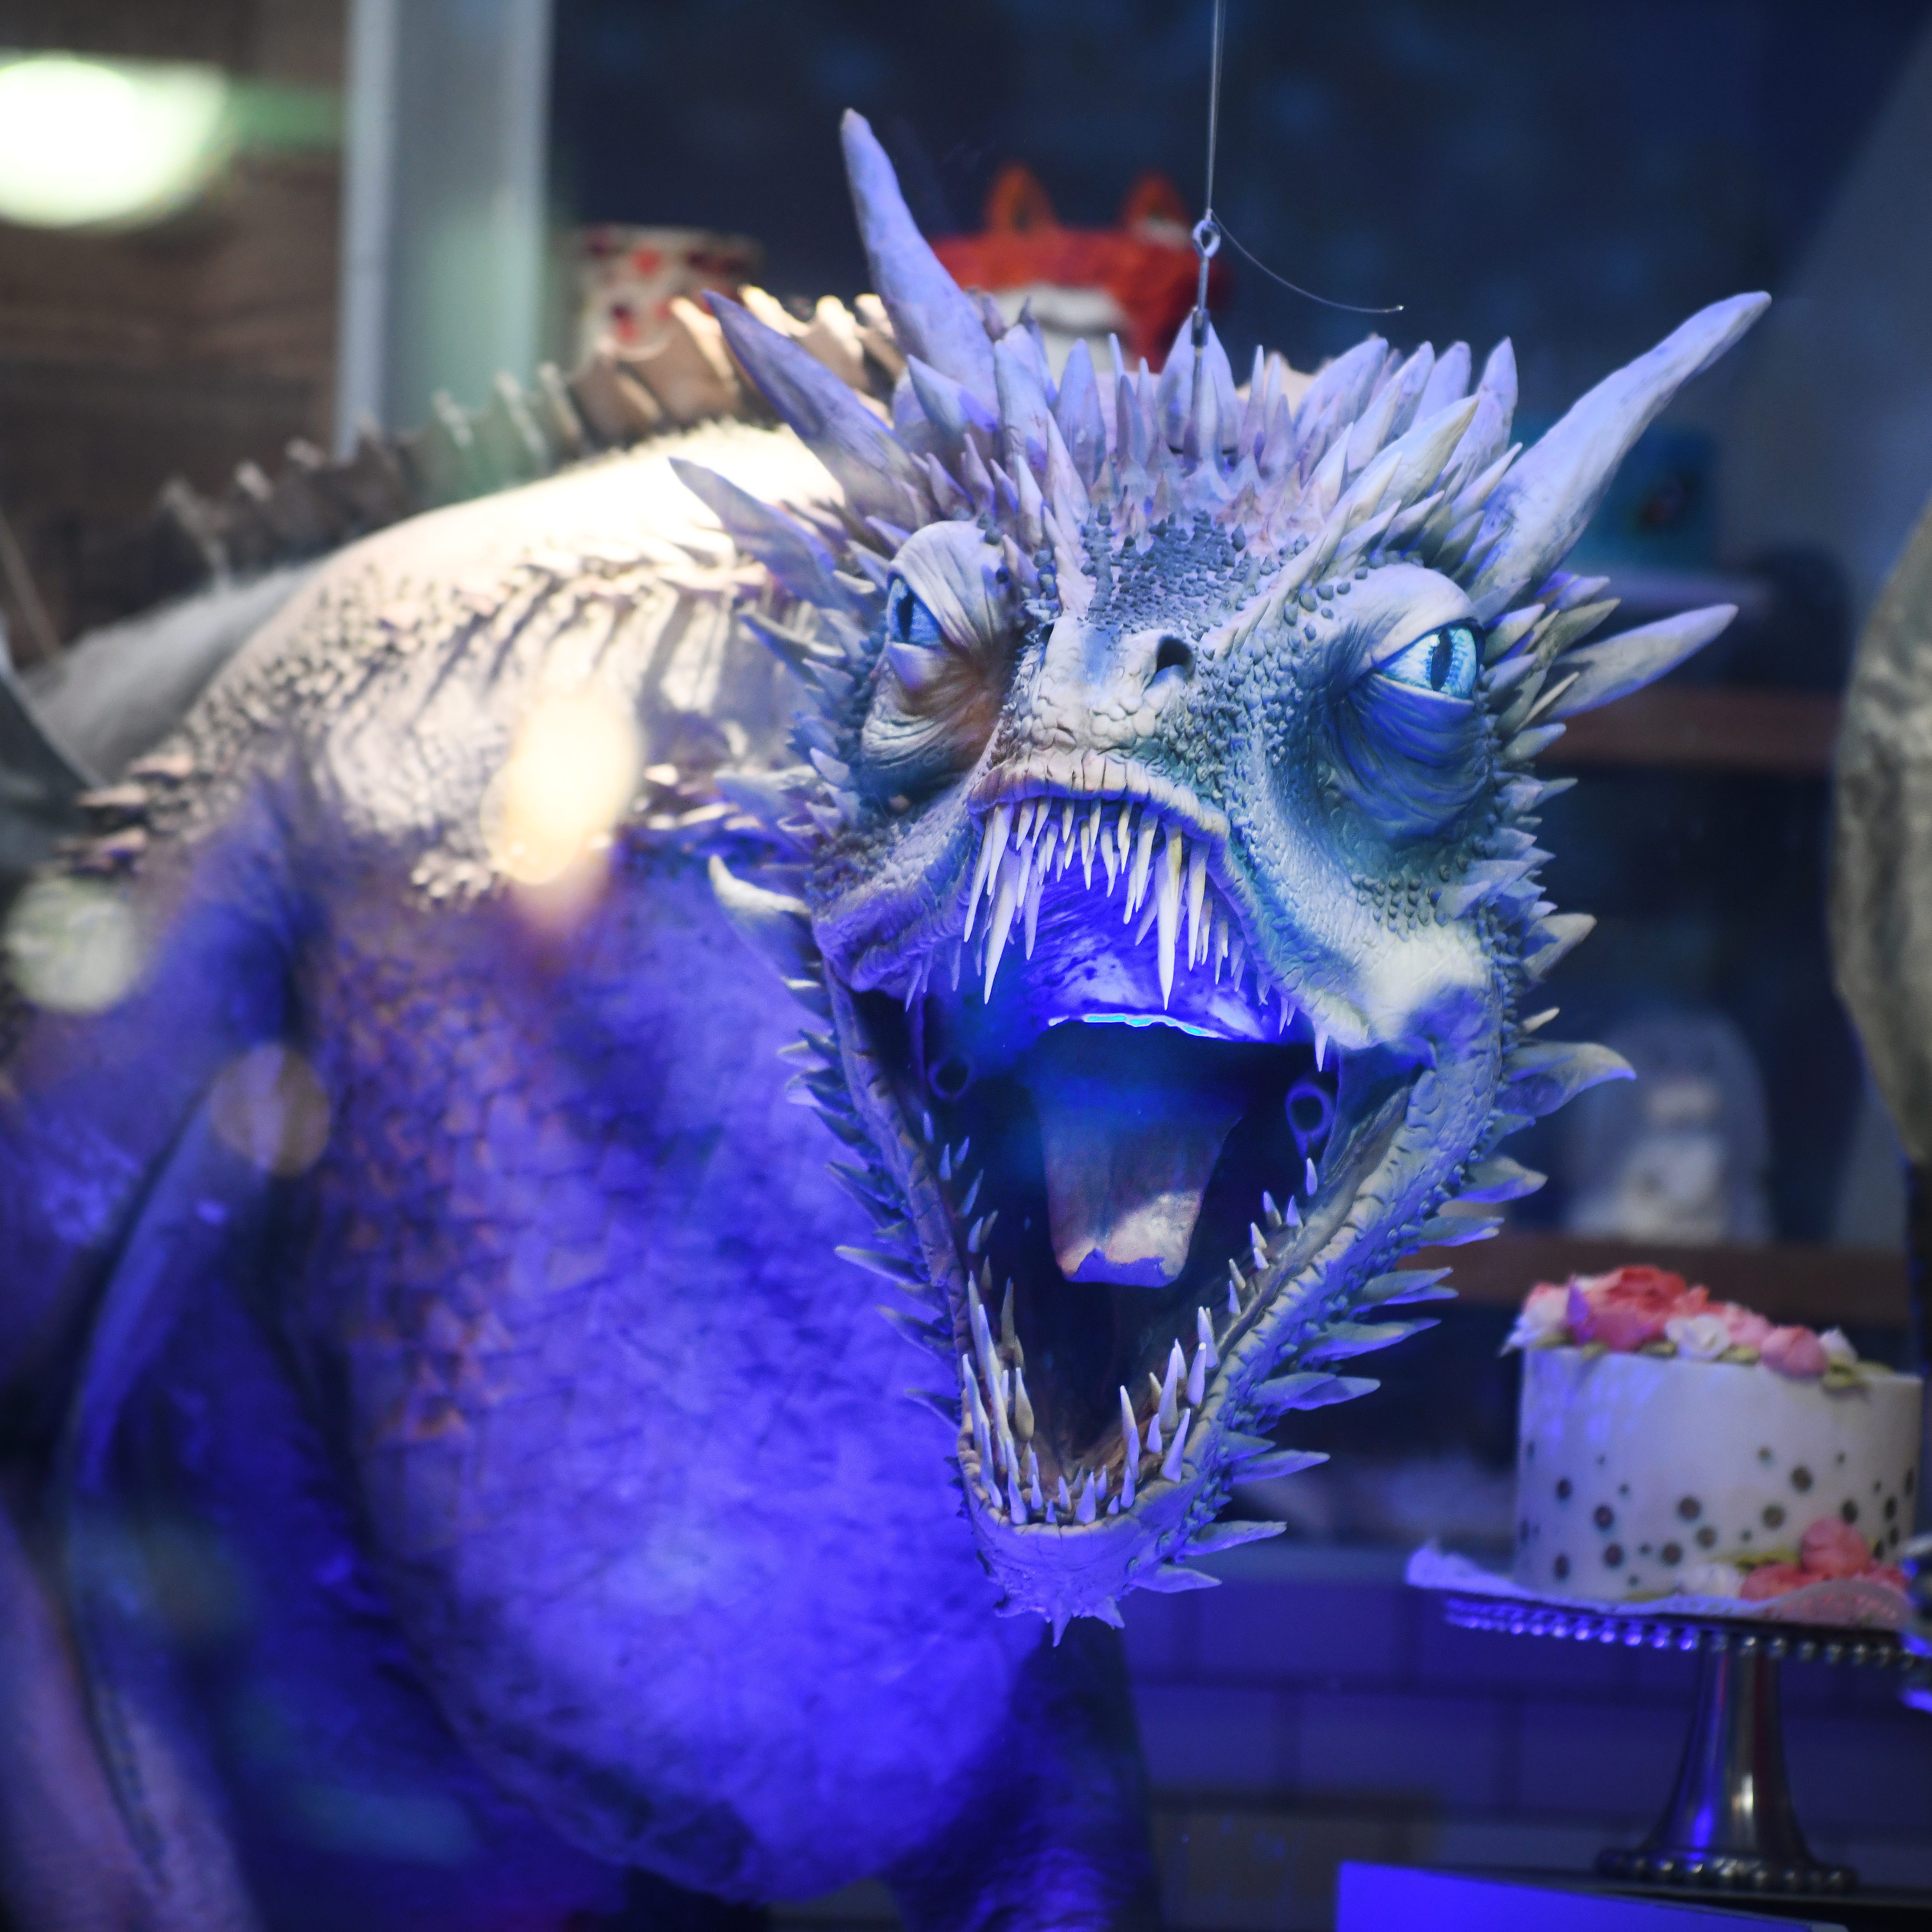 The dragon Viserion, turned into an ice dragon by the Night King, turns his terrifying face toward passersby from the window of The Home Bakery.